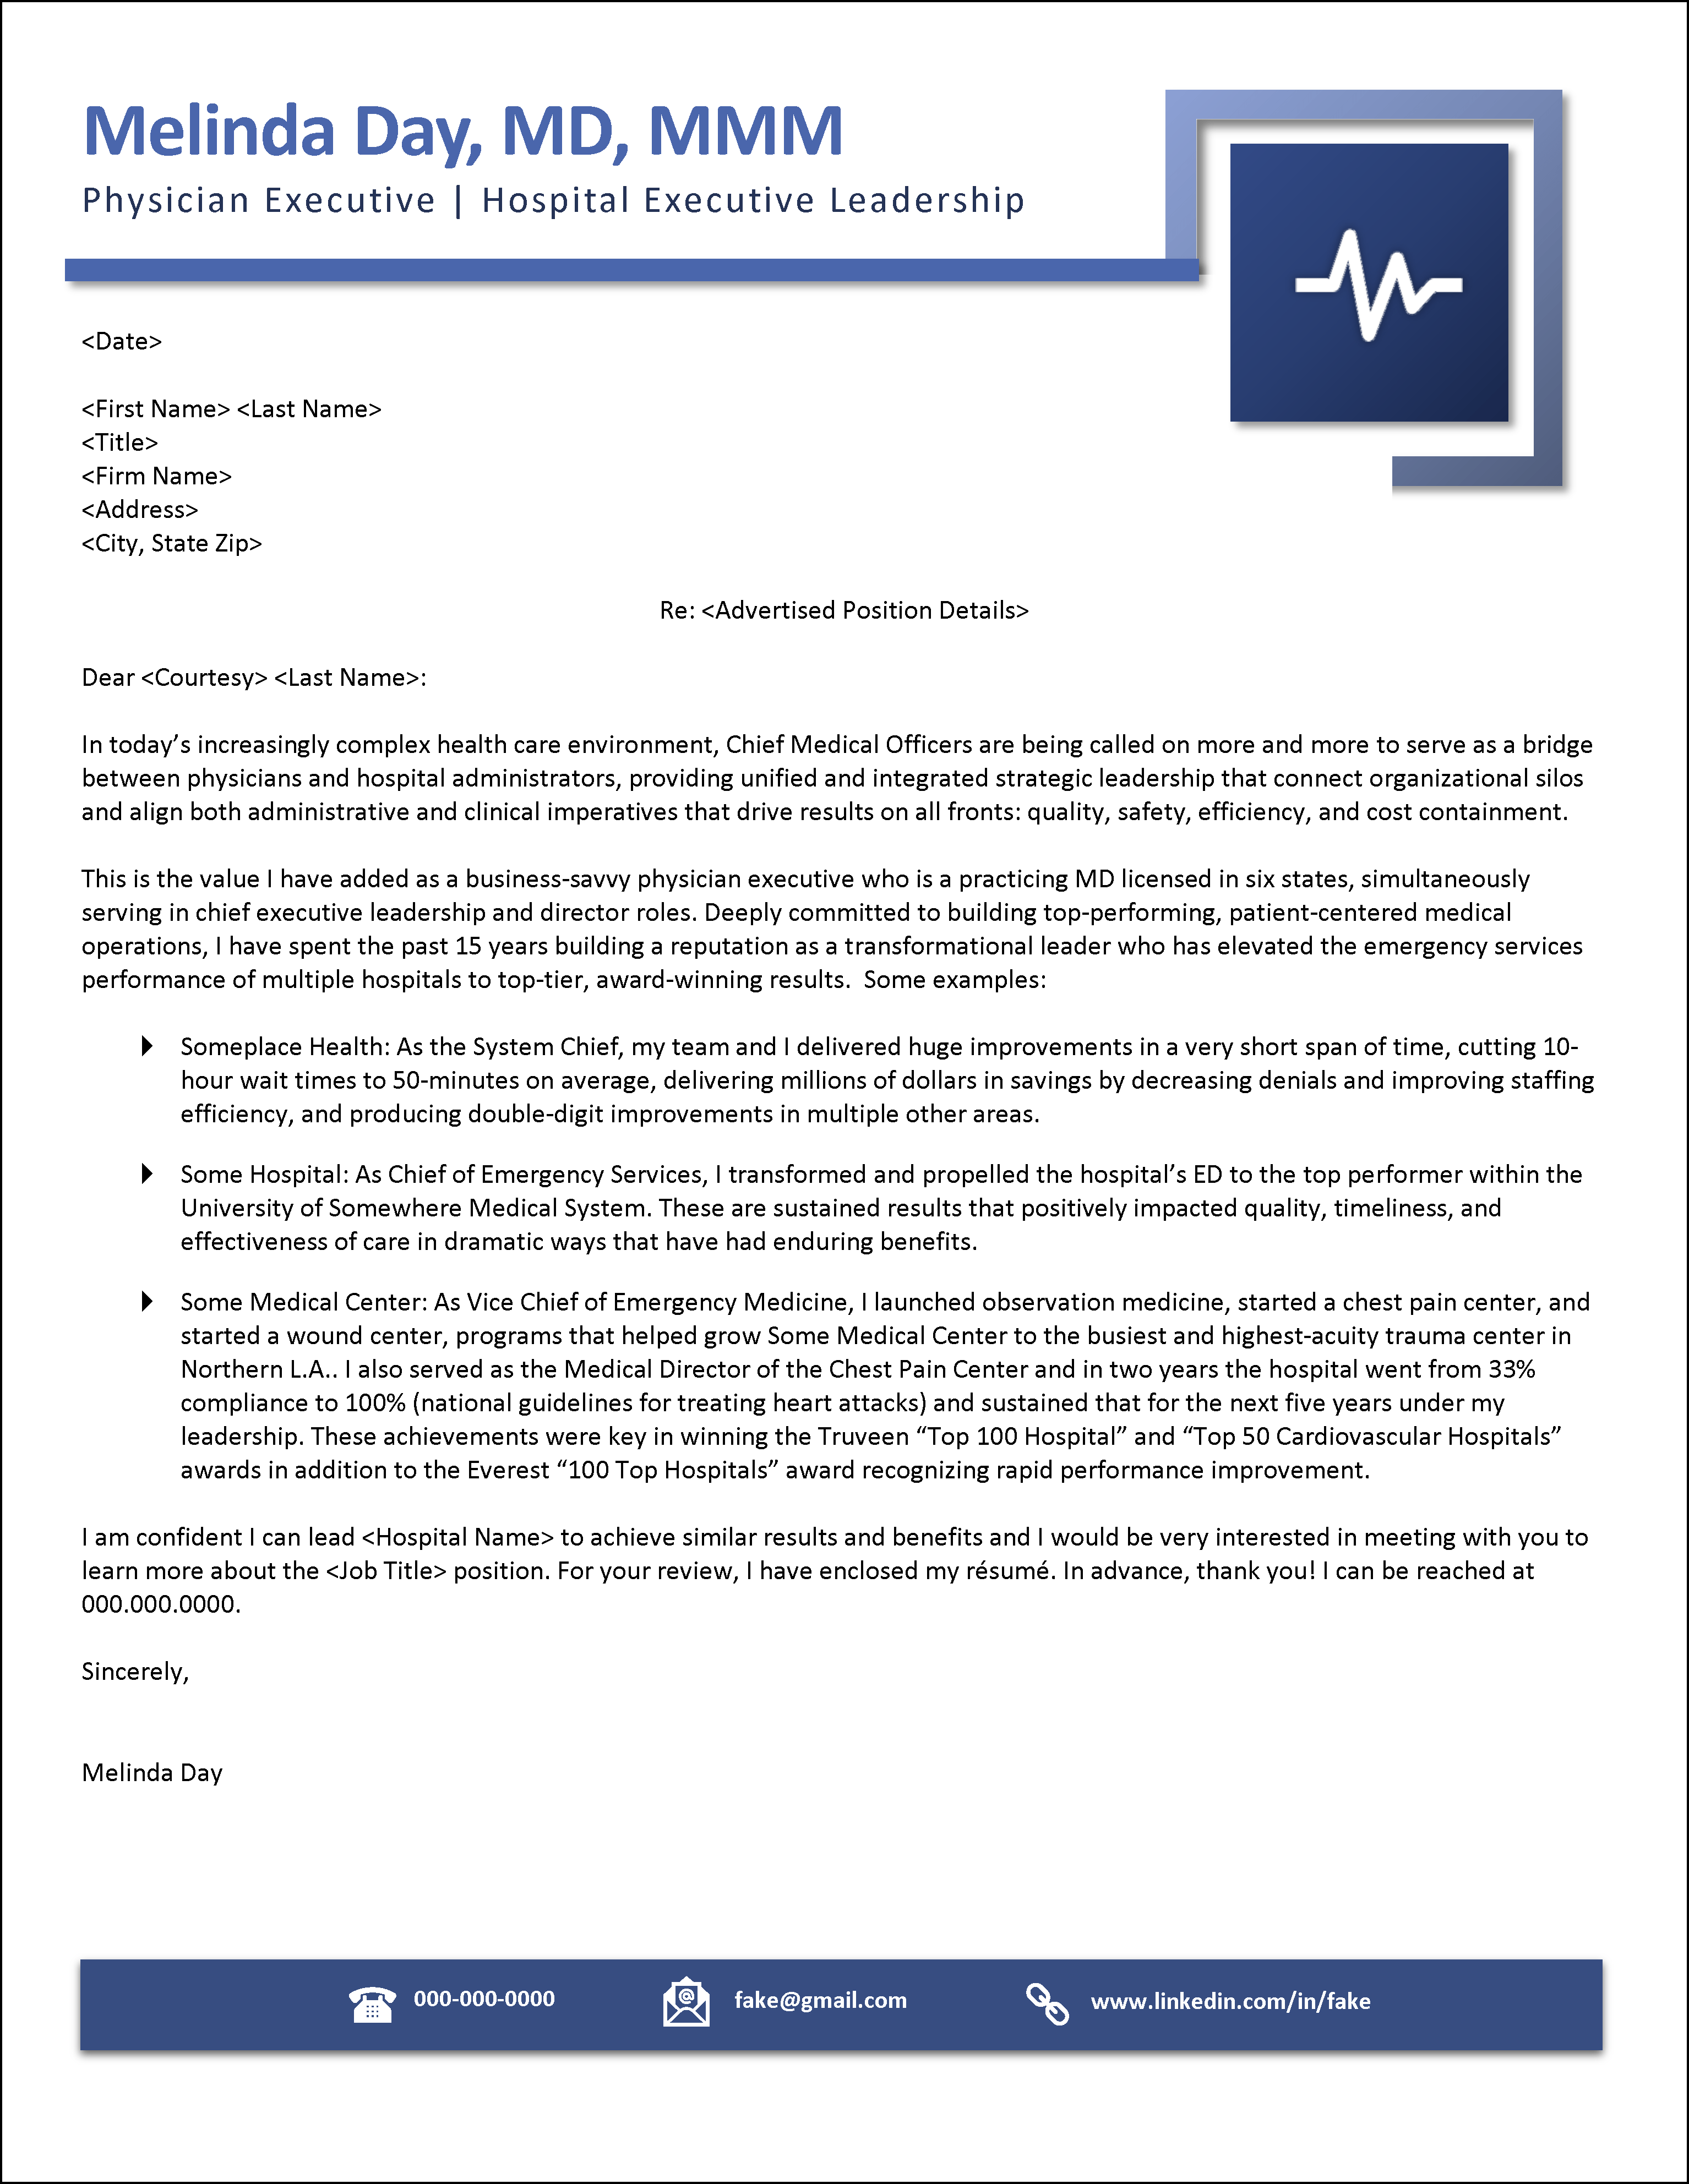 Example Job Ad Response Cover Letter